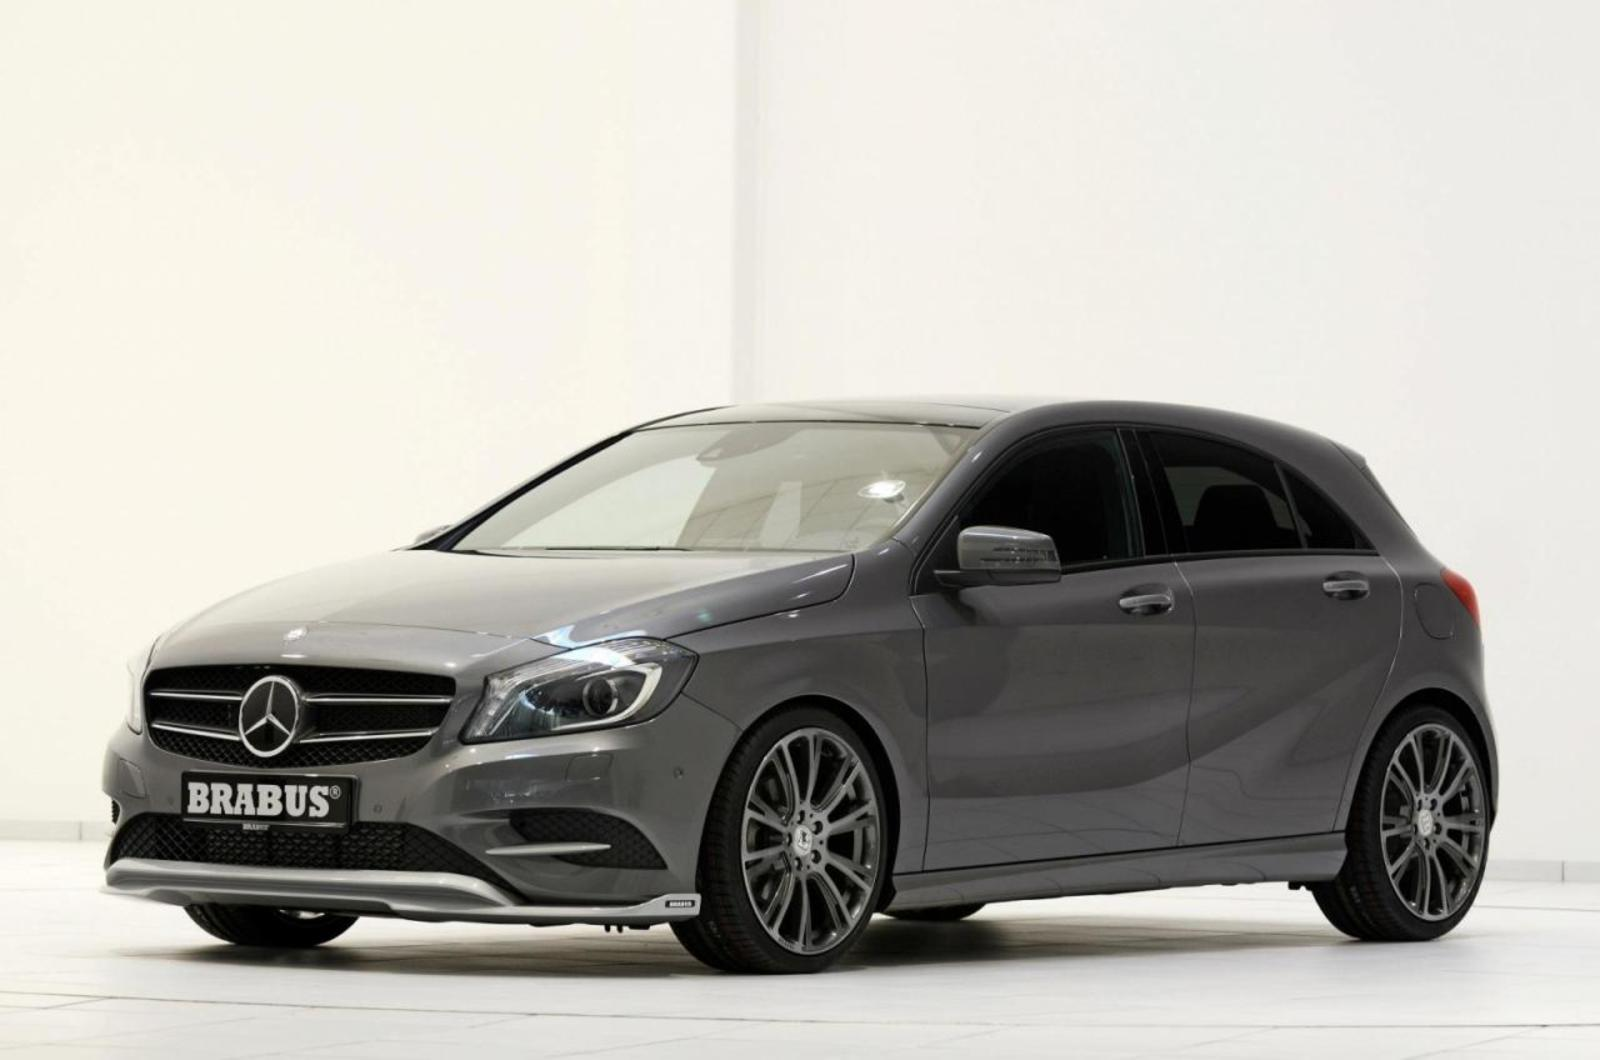 2013 mercedes benz a200 cdi by brabus review top speed. Black Bedroom Furniture Sets. Home Design Ideas